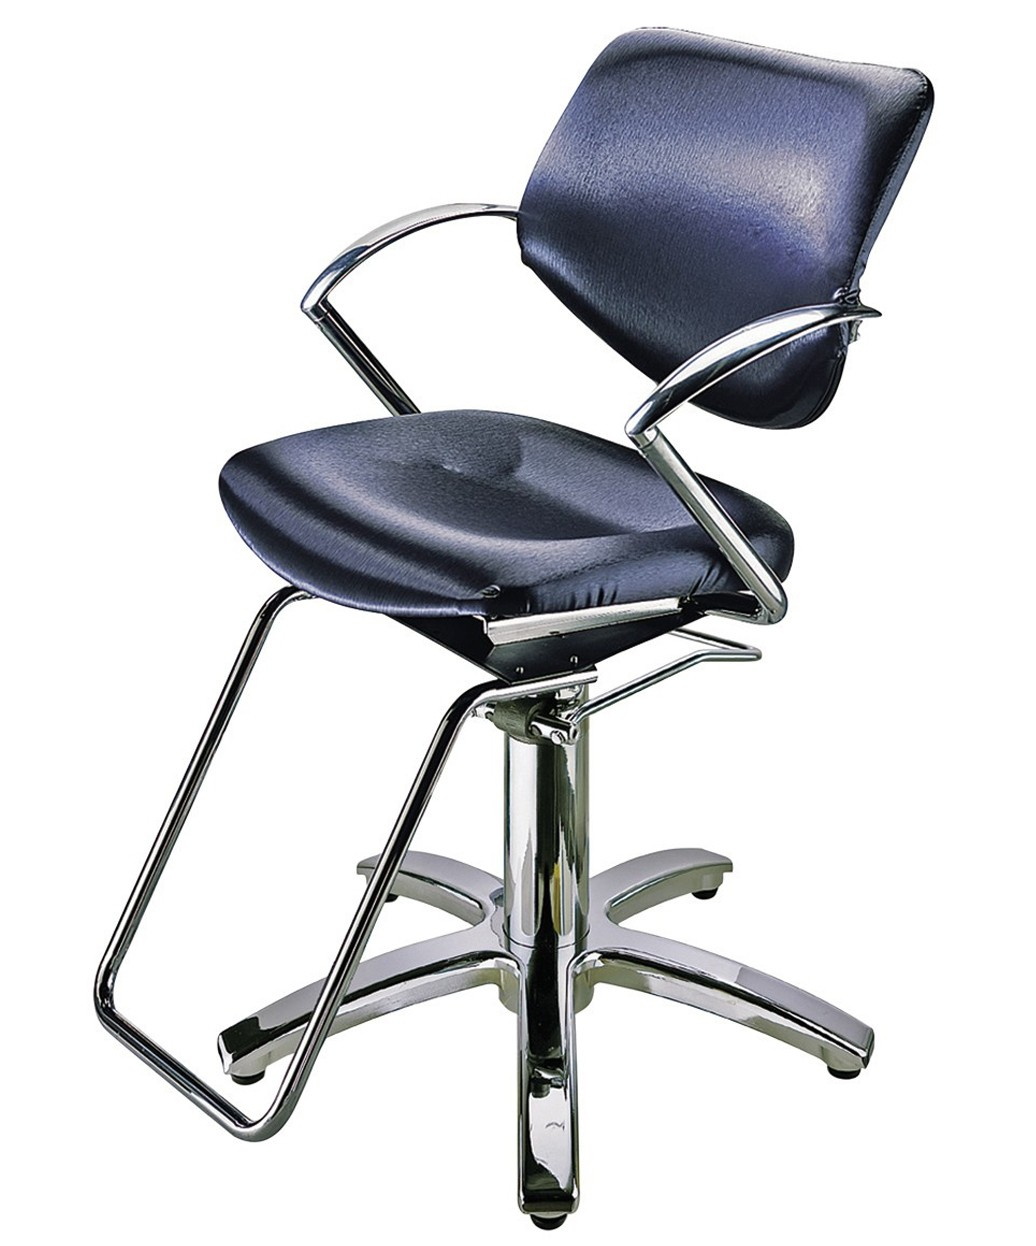 ST 790 Sara Styling Chair